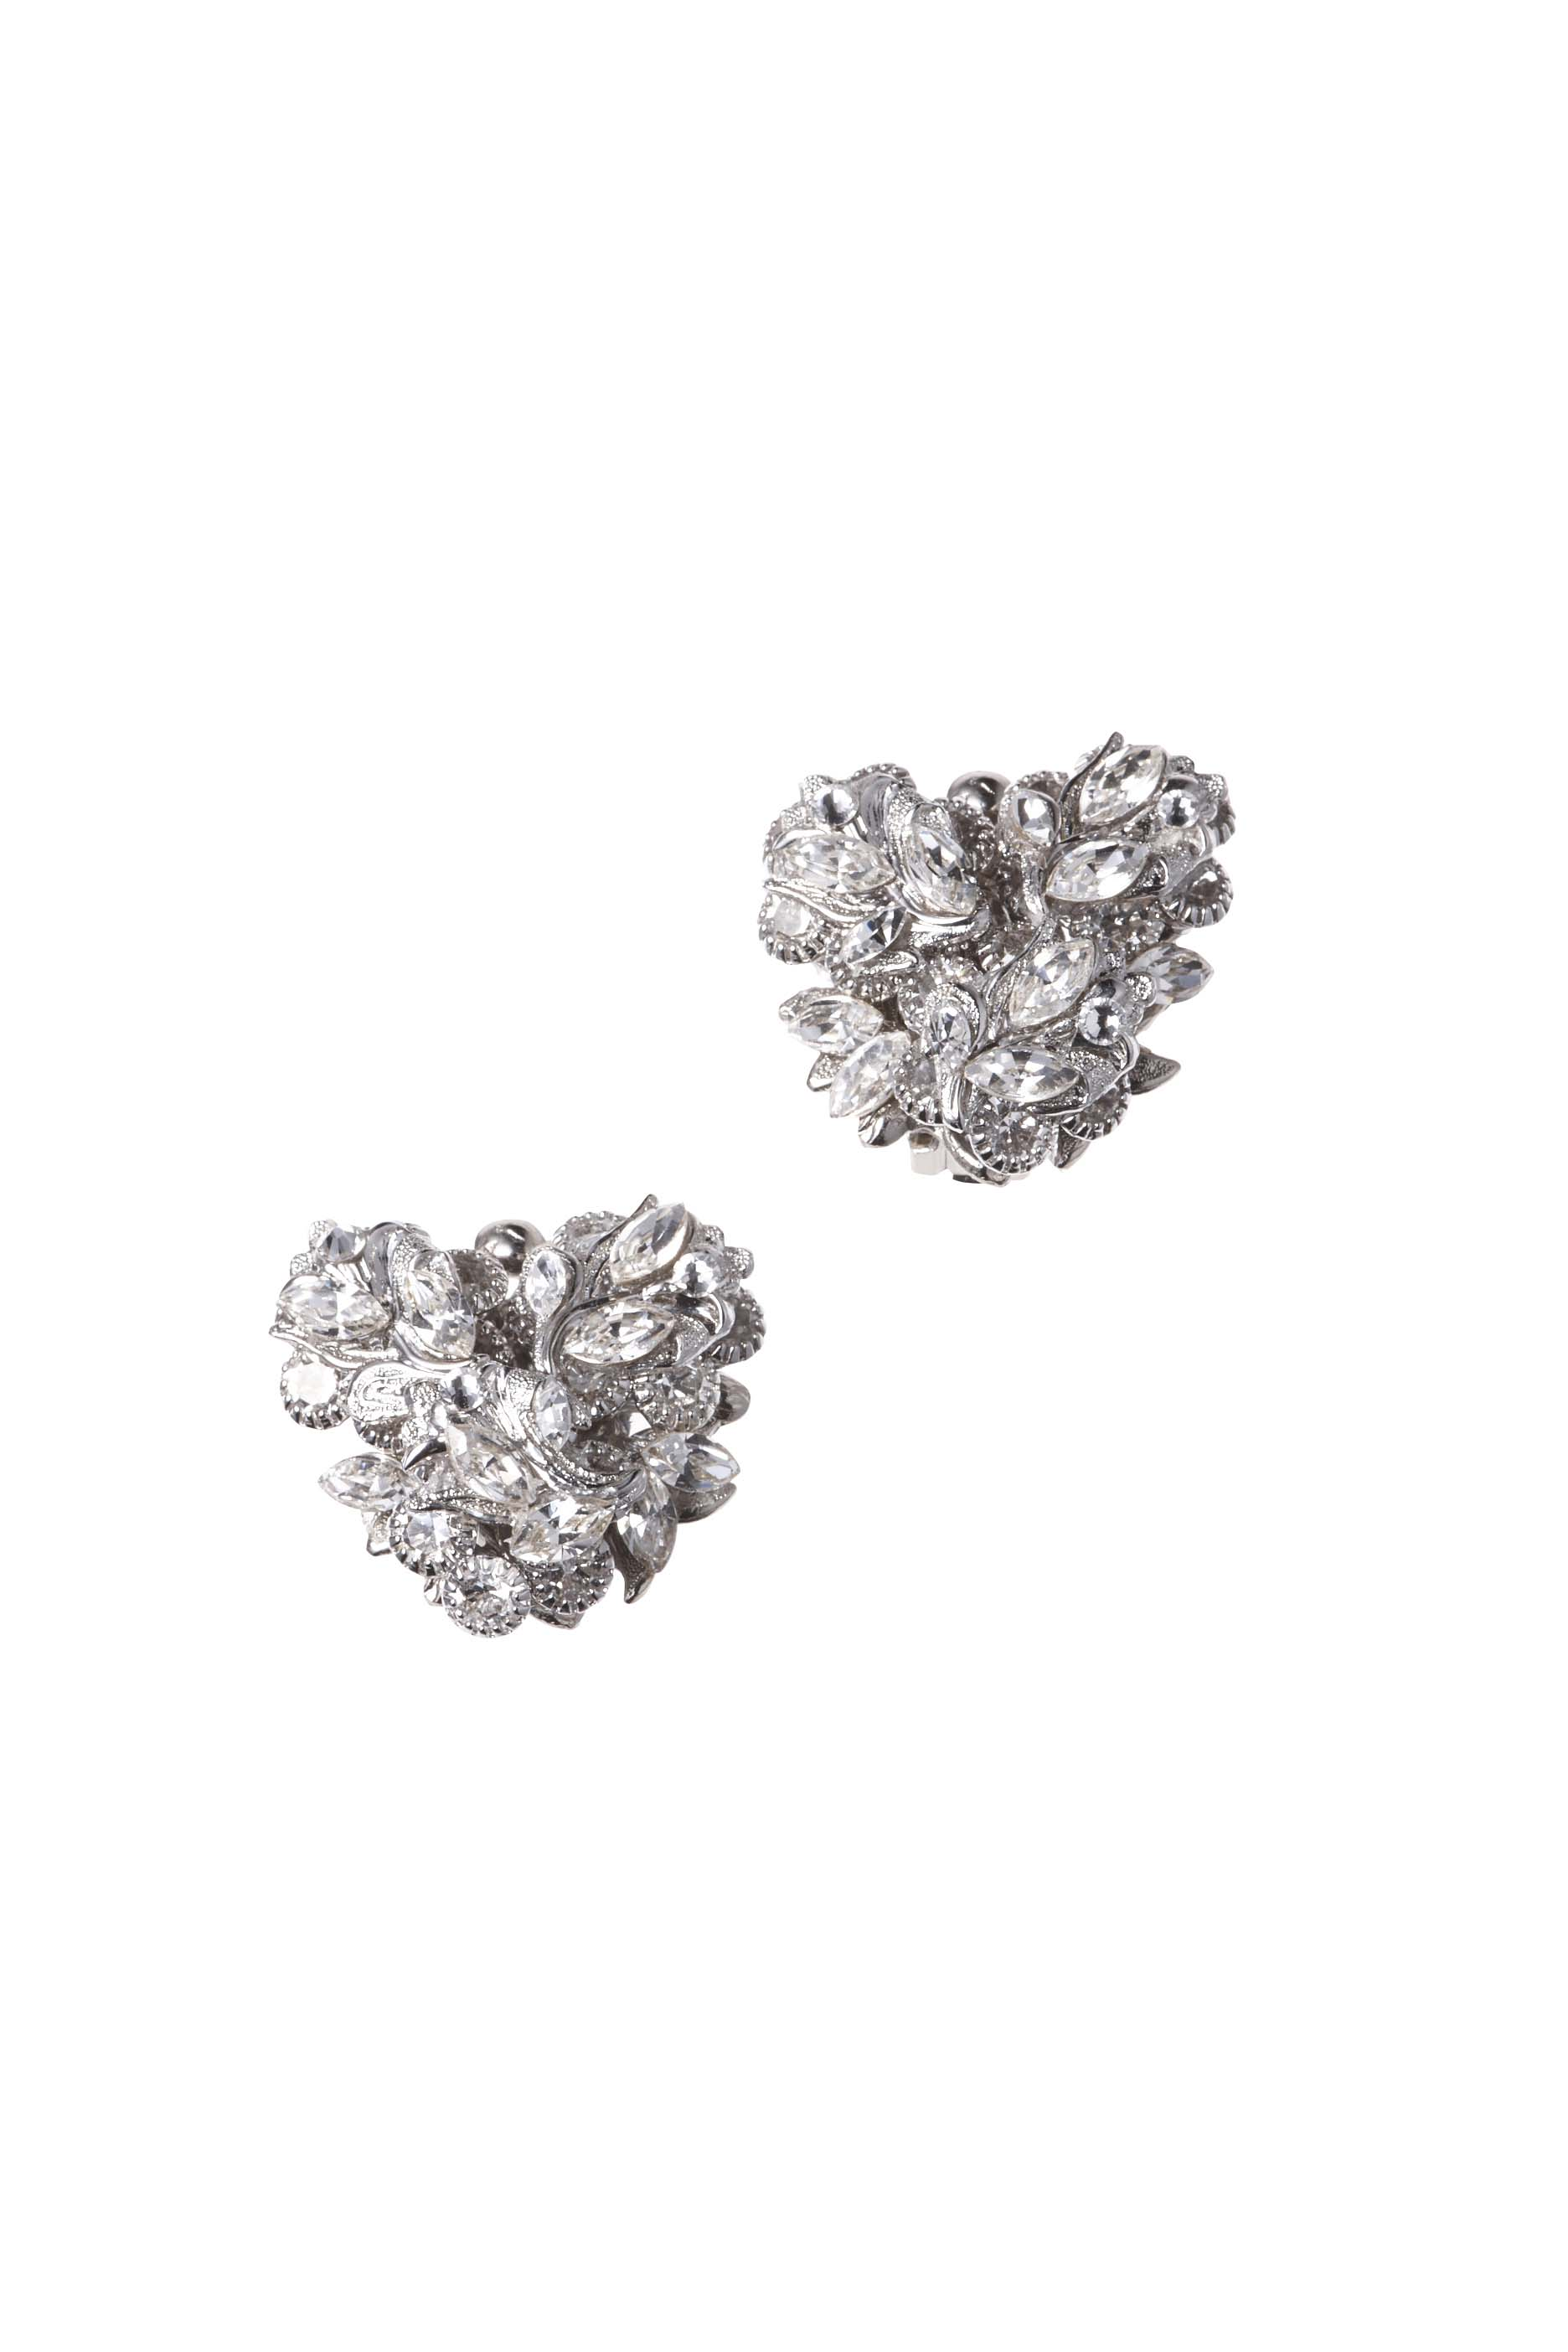 [RENTAL][Eva Earrings]by MariaElena(参考価格¥33,480)